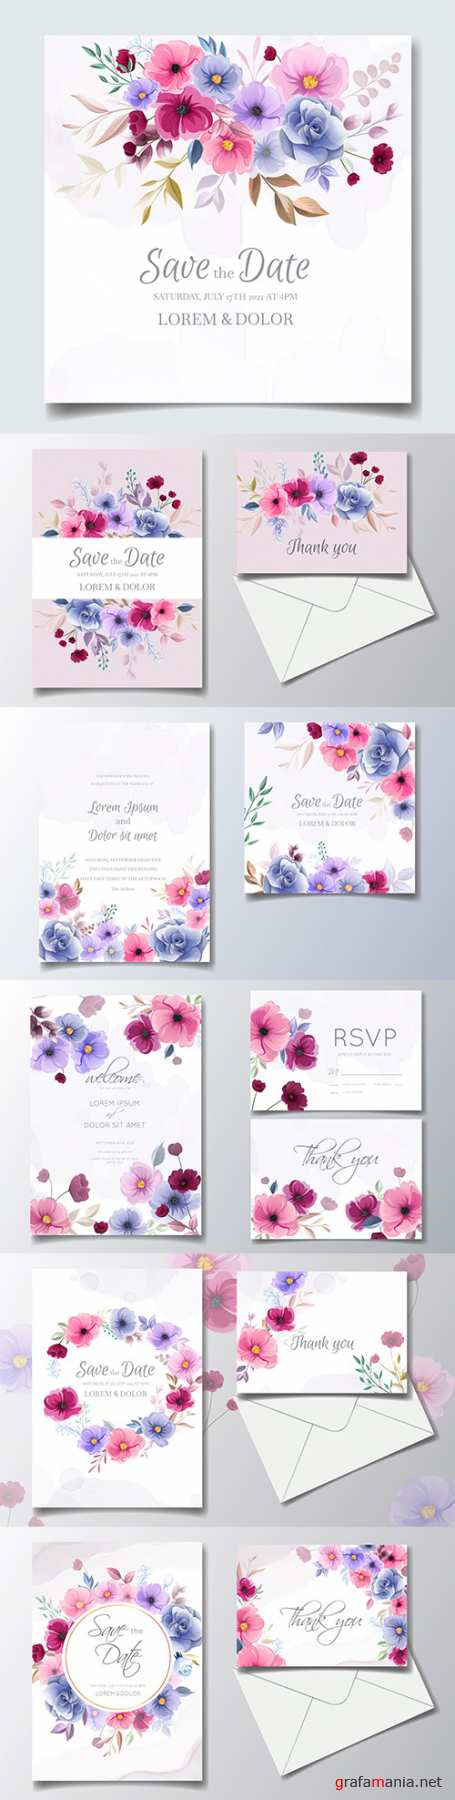 Floral wedding invitations colorful design painted